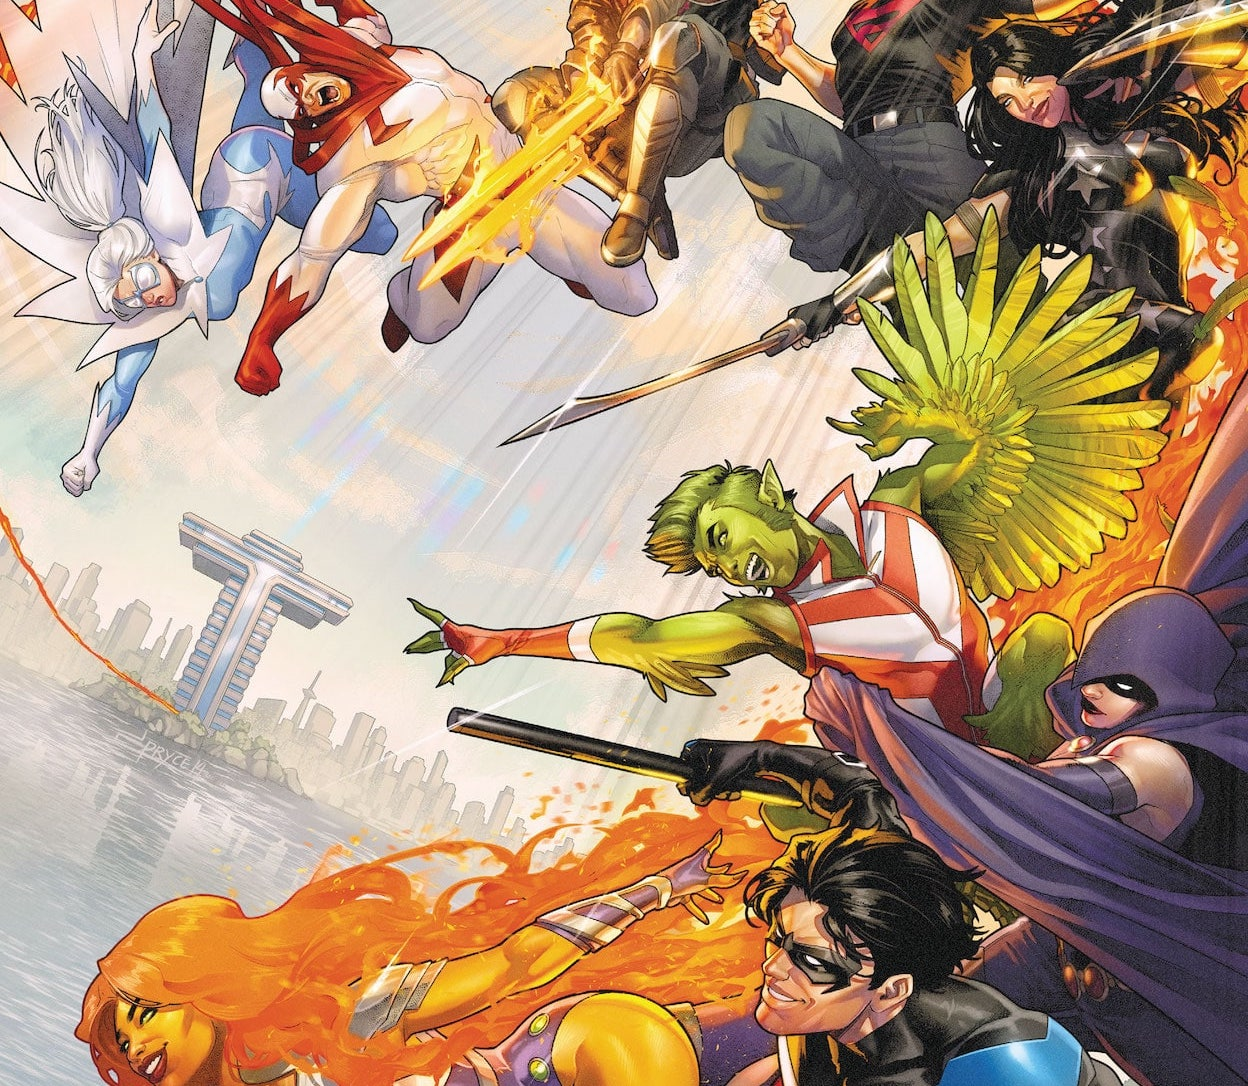 'Titans United' #1 opens with a strong superhero voice, but a weak mystery